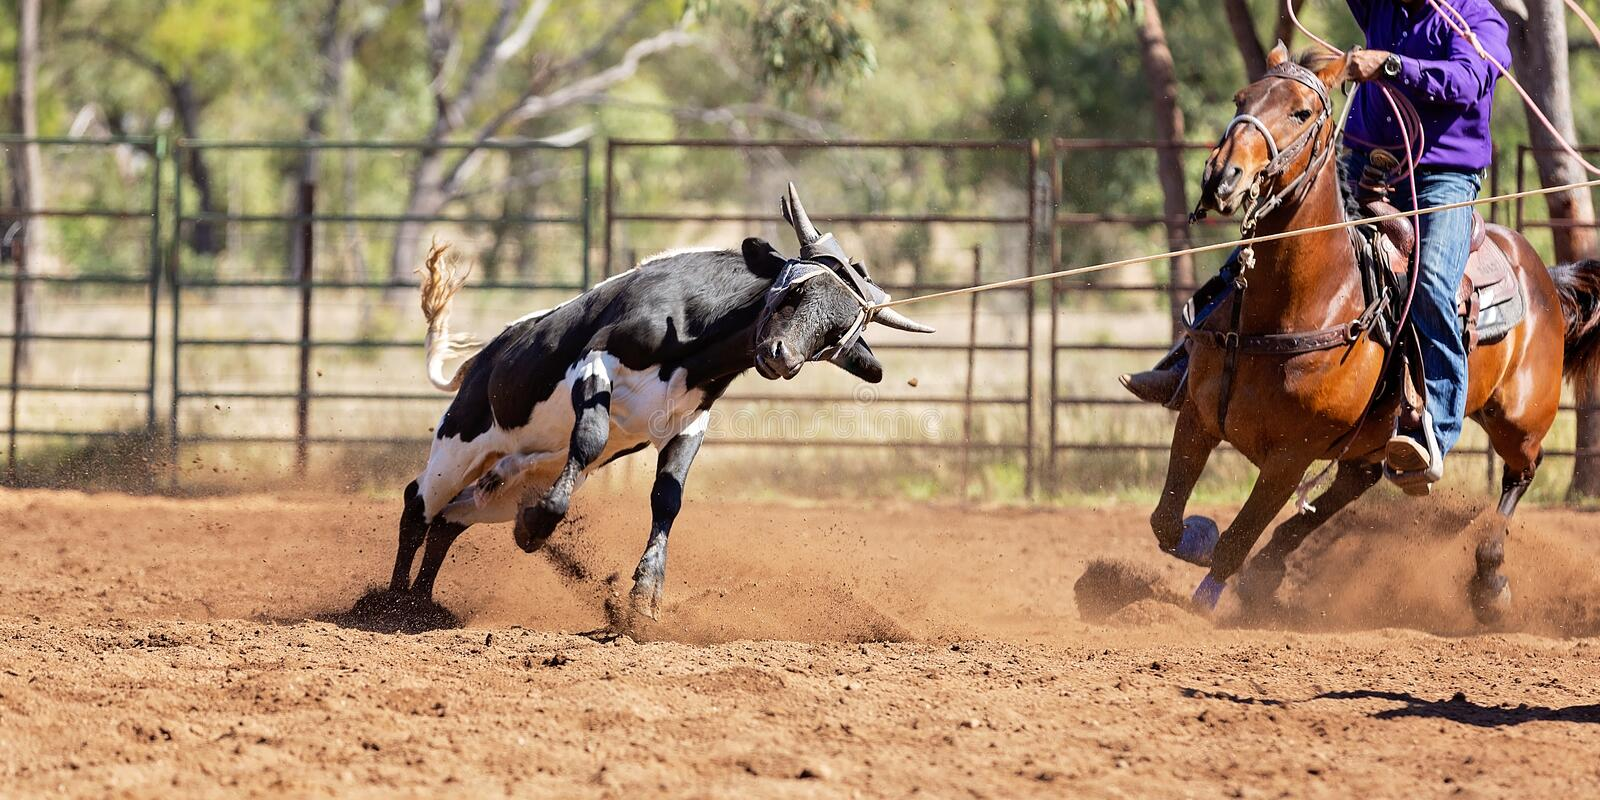 AustralierTeam Calf Roping At Country rodeo arkivfoto